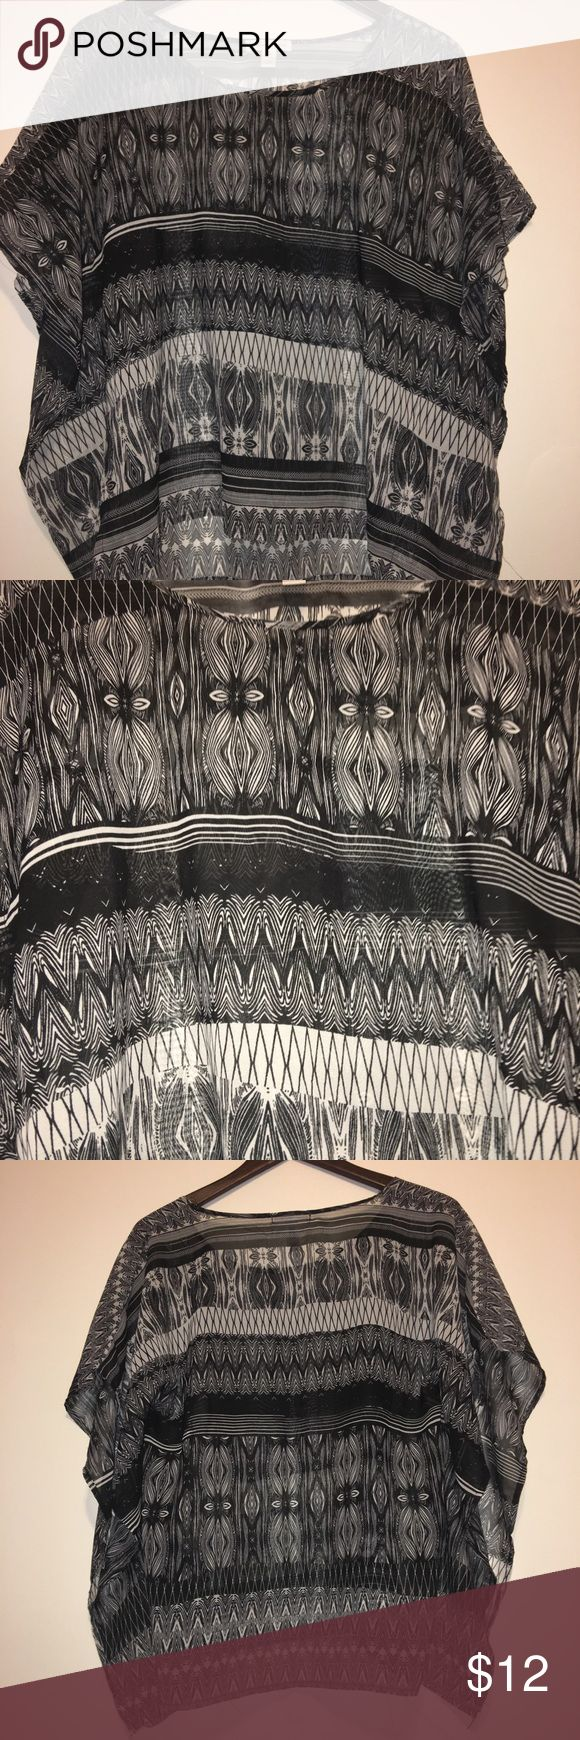 Tribal Print Batwing Blouse Black & White/Silver Tribal Print Semi-Sheer top, batwing style Crop Top, NWOT. Ambiance Apparel Tops Blouses